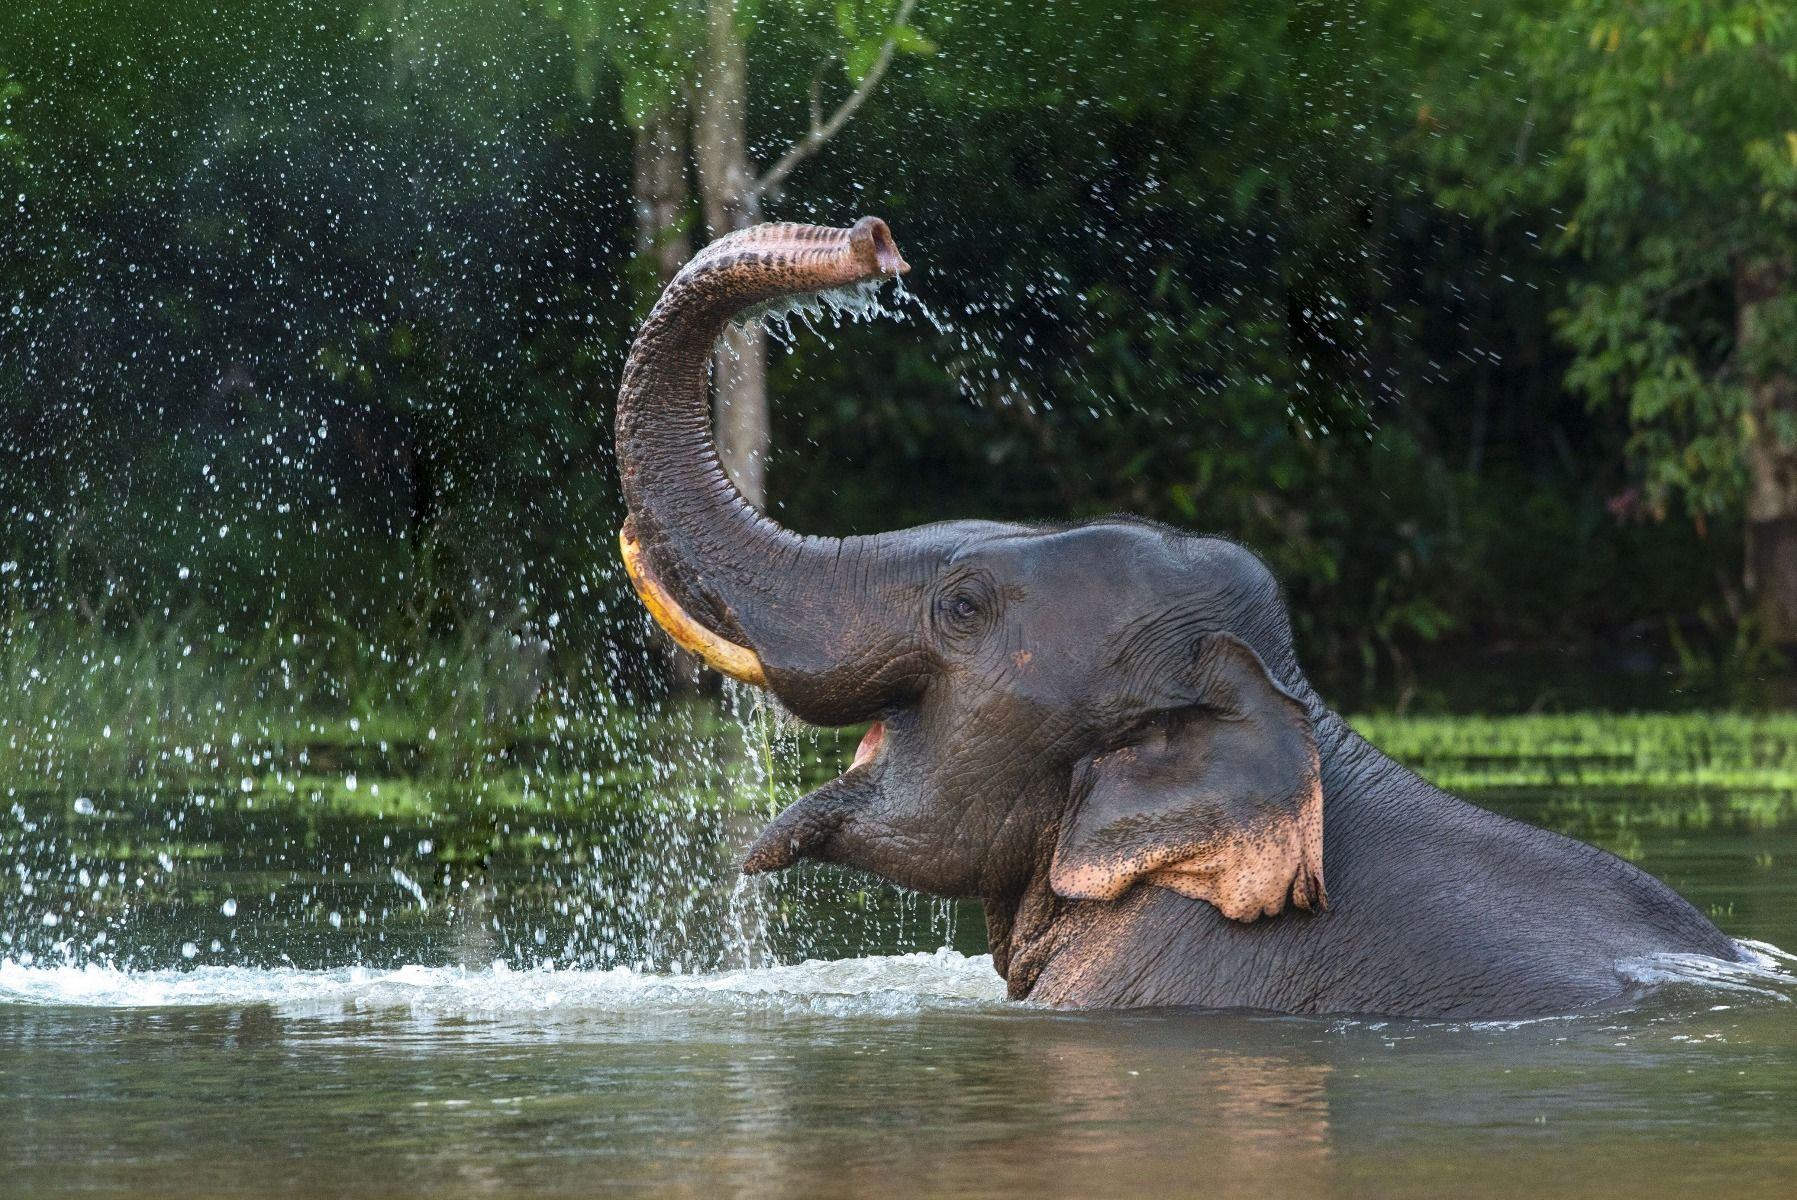 Jungle Olifant in water